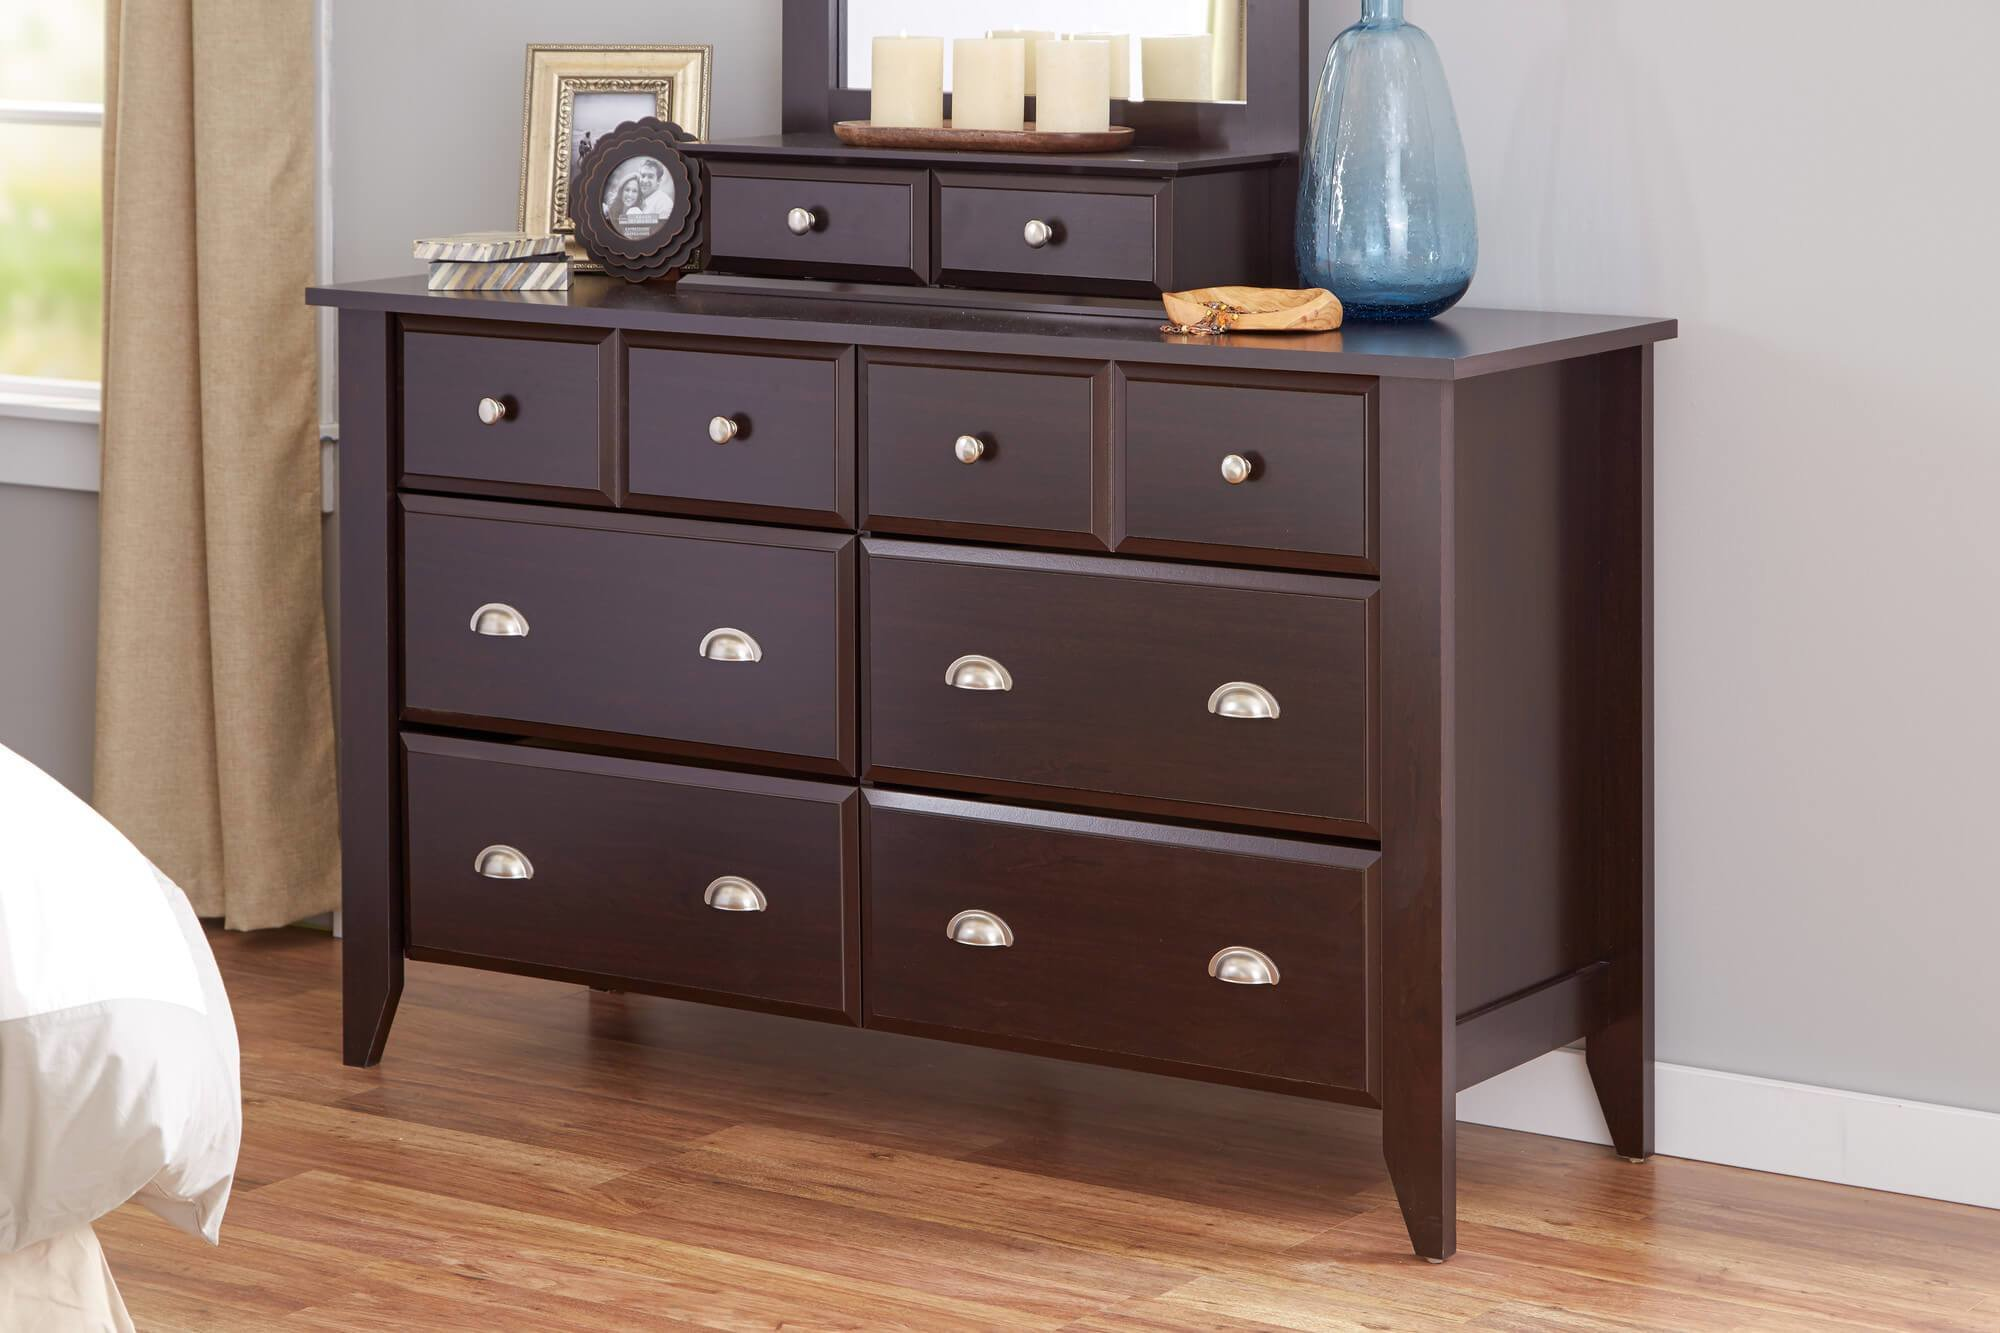 Best 21 Types Of Dressers Chest Of Drawers For Your Bedroom With Pictures